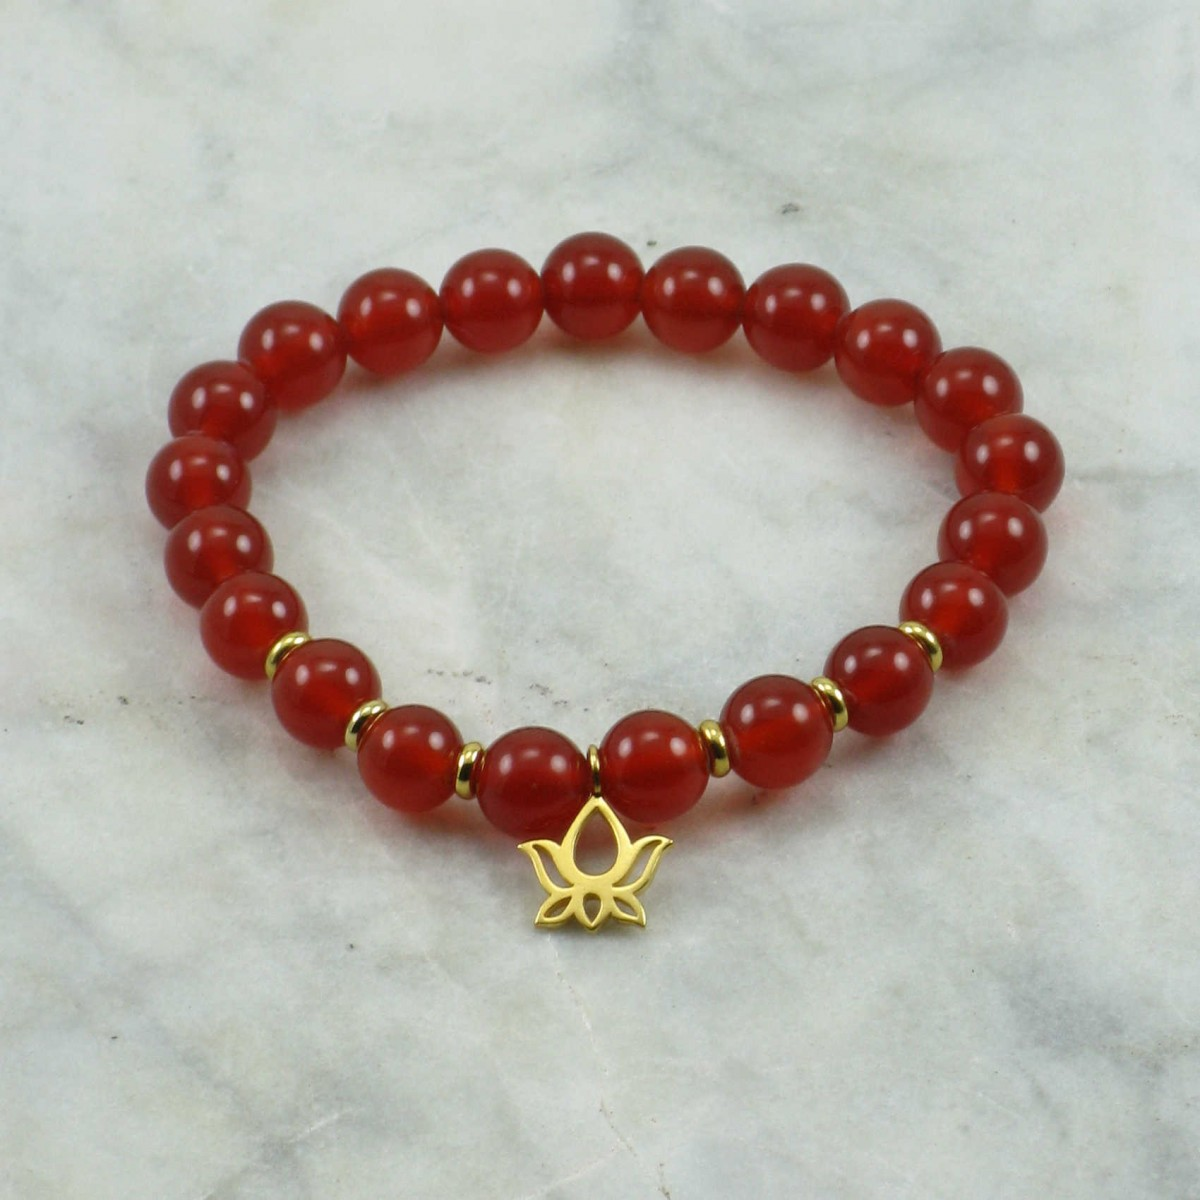 Vitality_Mala_Bead_Bracelet_21_Carnelian_Mala_Beads_Buddhist_Prayer_Beads_Wrist